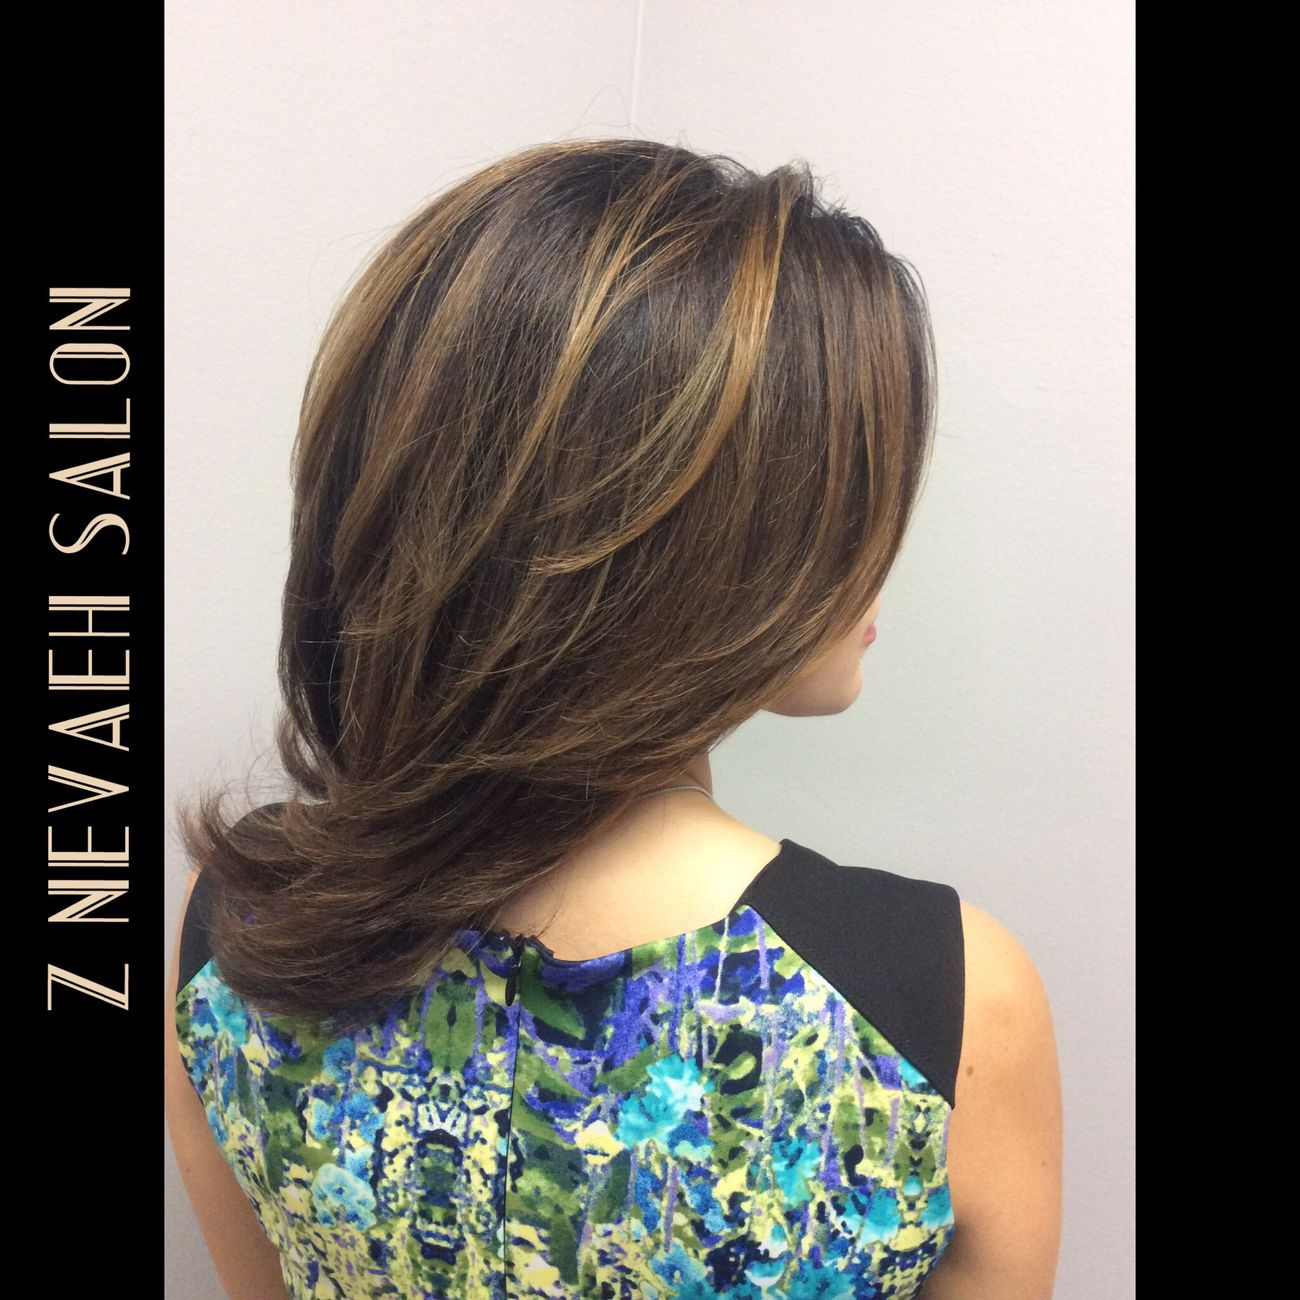 For The New You @znevaehsalon @lorealprous Check This Out Hair Haircut Check This Out Hairstyle Salon Fashion Hair Vintage Fashion Eye4photography # Photooftheday Fashion #style #stylish #love #TagsForLikes #me #cute #photooftheday #nails #hair #beauty #beautiful #instagood #instafashion # HealthyHair Salonlife Hairtrends L'Oreal Professionnel Z Nevaeh Salon Teamznevaeh @znevaehsalon Knoxvillesalon Pro Fiber Shinyhair Tecni.art Color Specialist Lorealprofessionnelsalon Lorealpros Balayage Haircolor